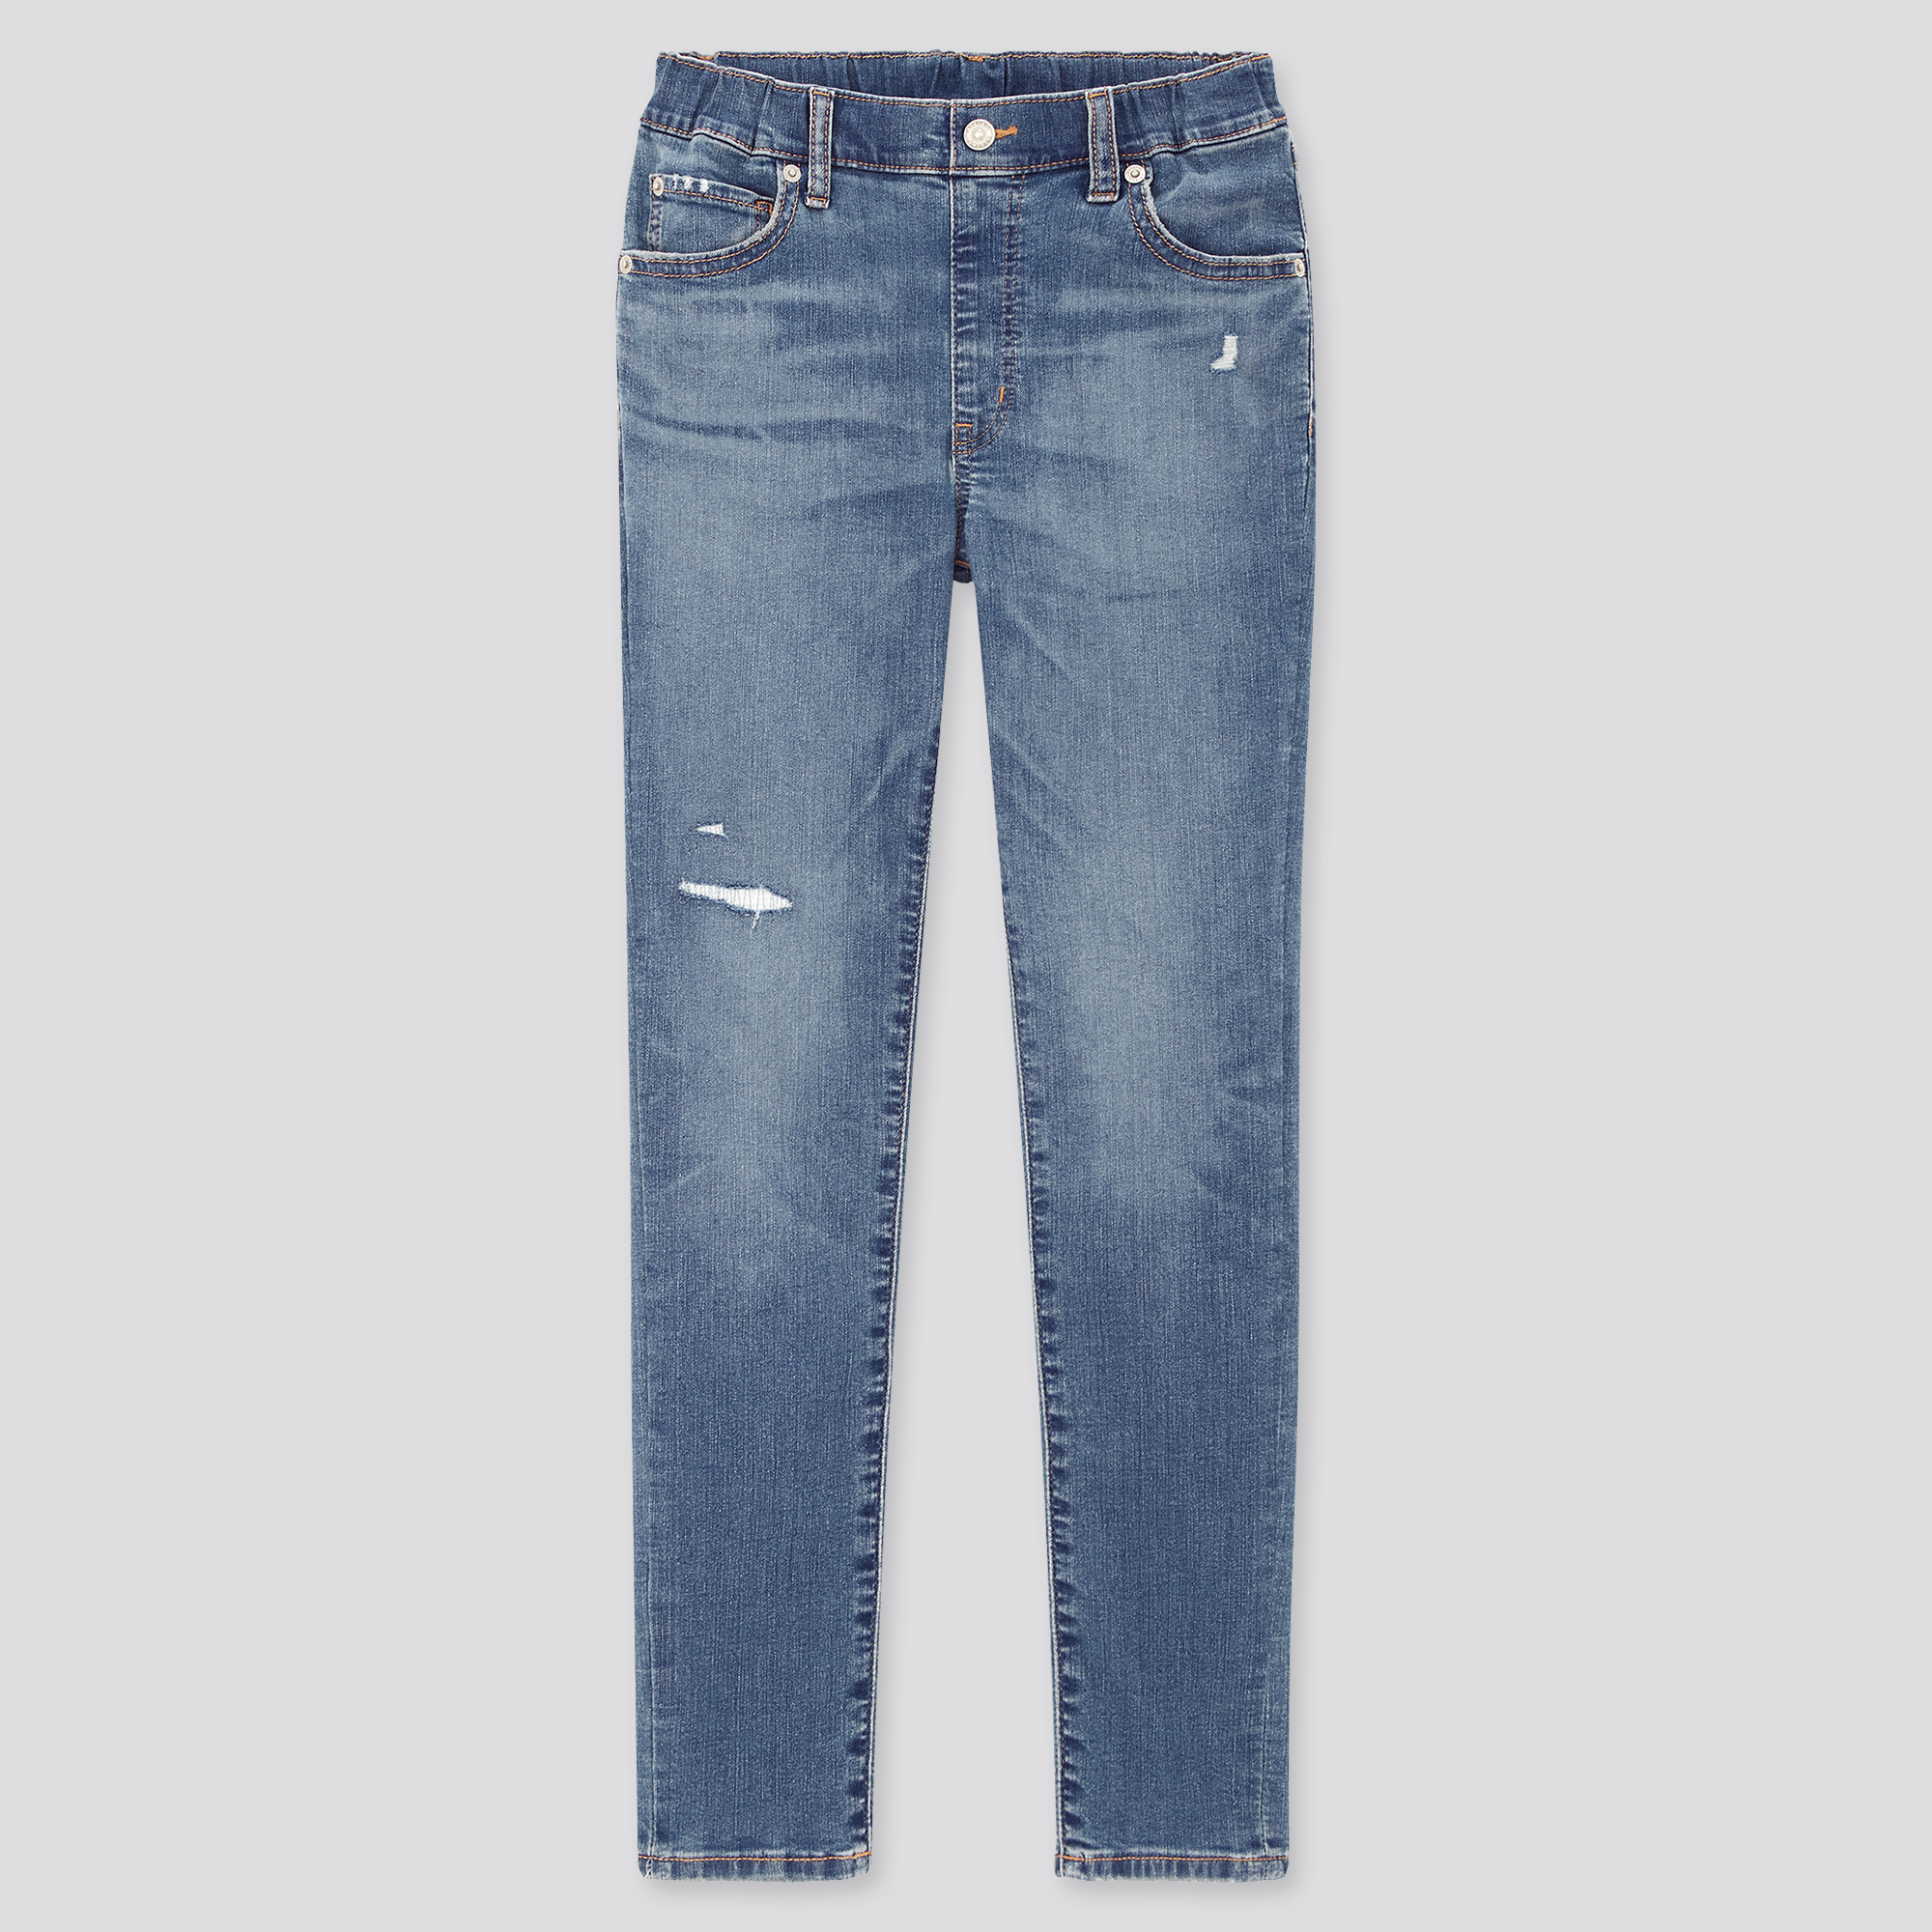 Chicco Baby-Jungen Pantaloni Lunghi Denim Stretch Jeans